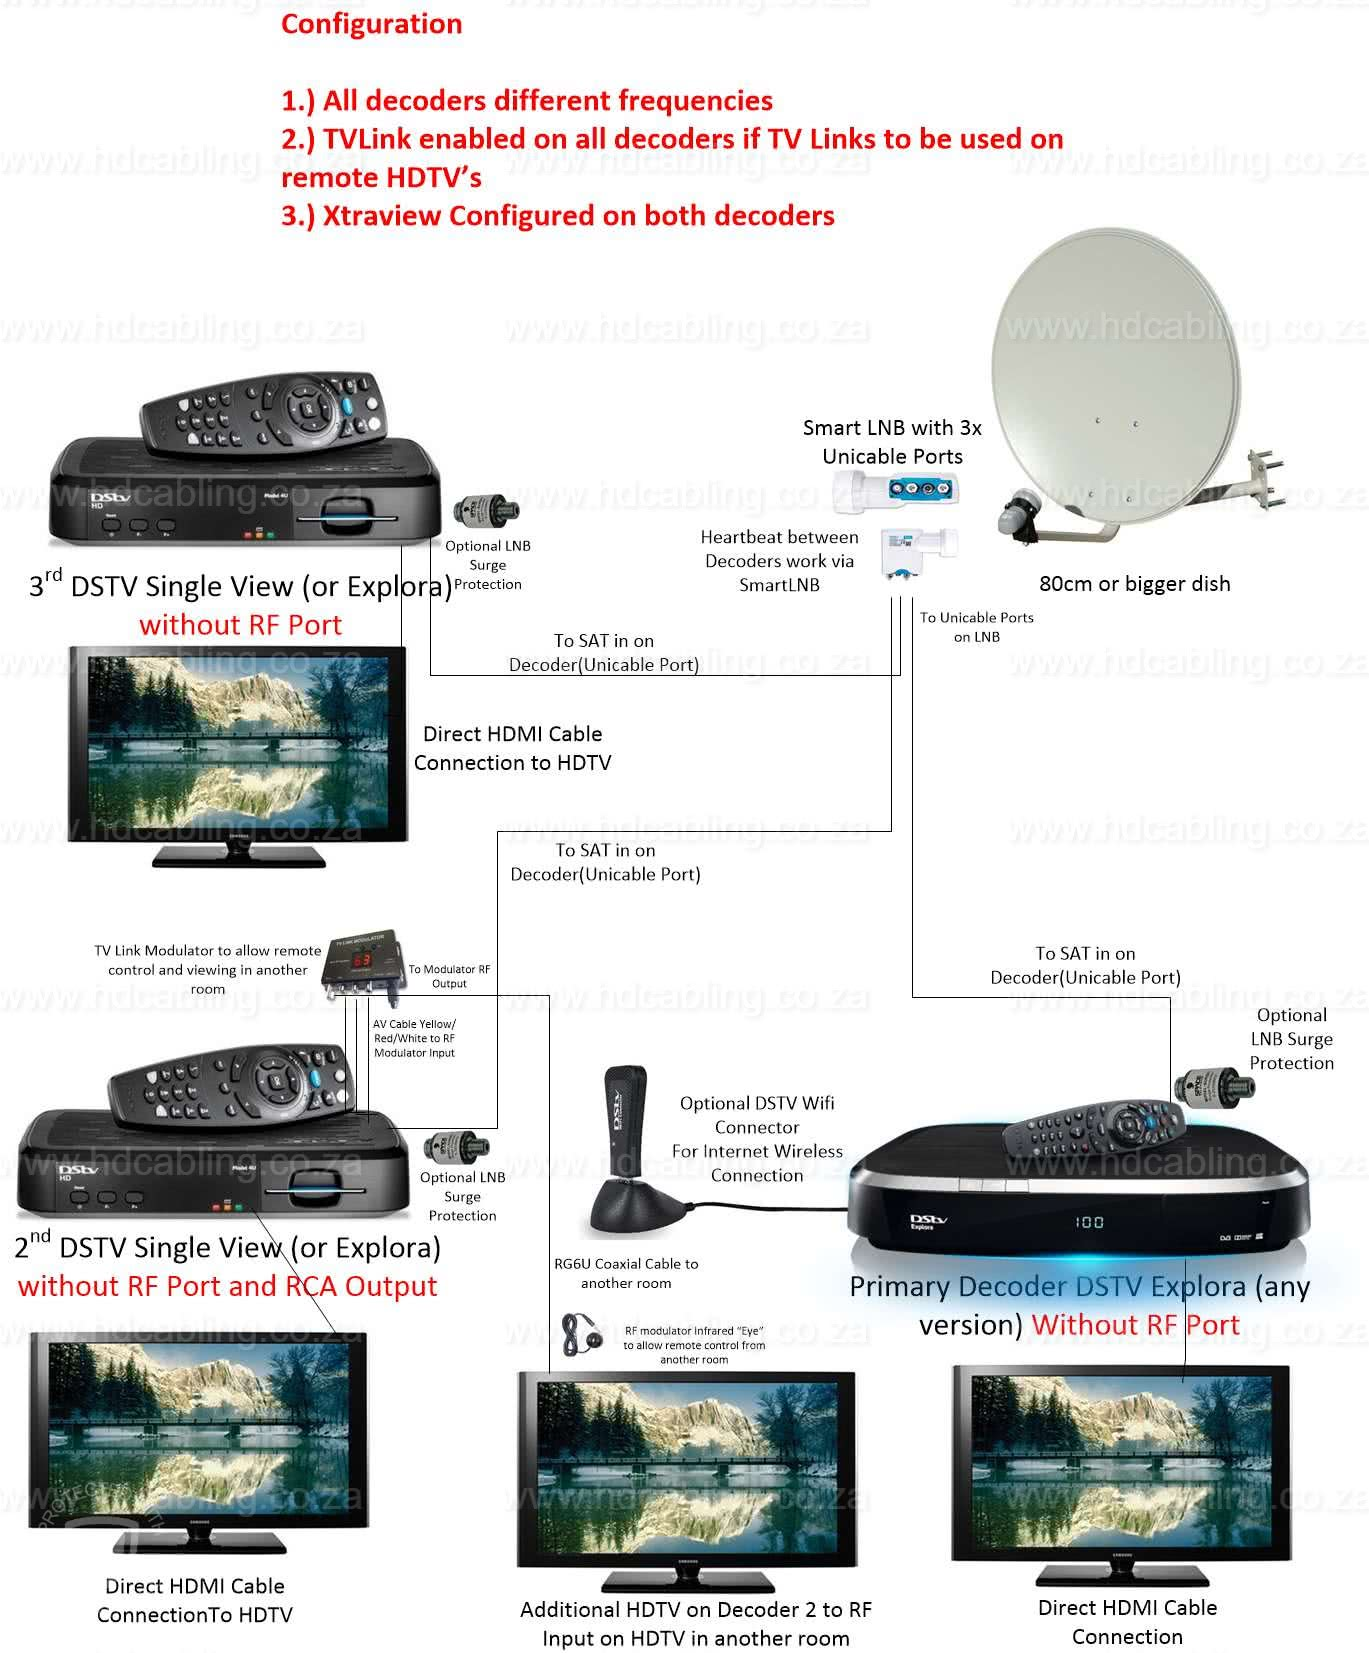 DSTV XtraView Installation & Frequencies (User Bands) for Multichoice Explora/HDPVR and other decoders 1